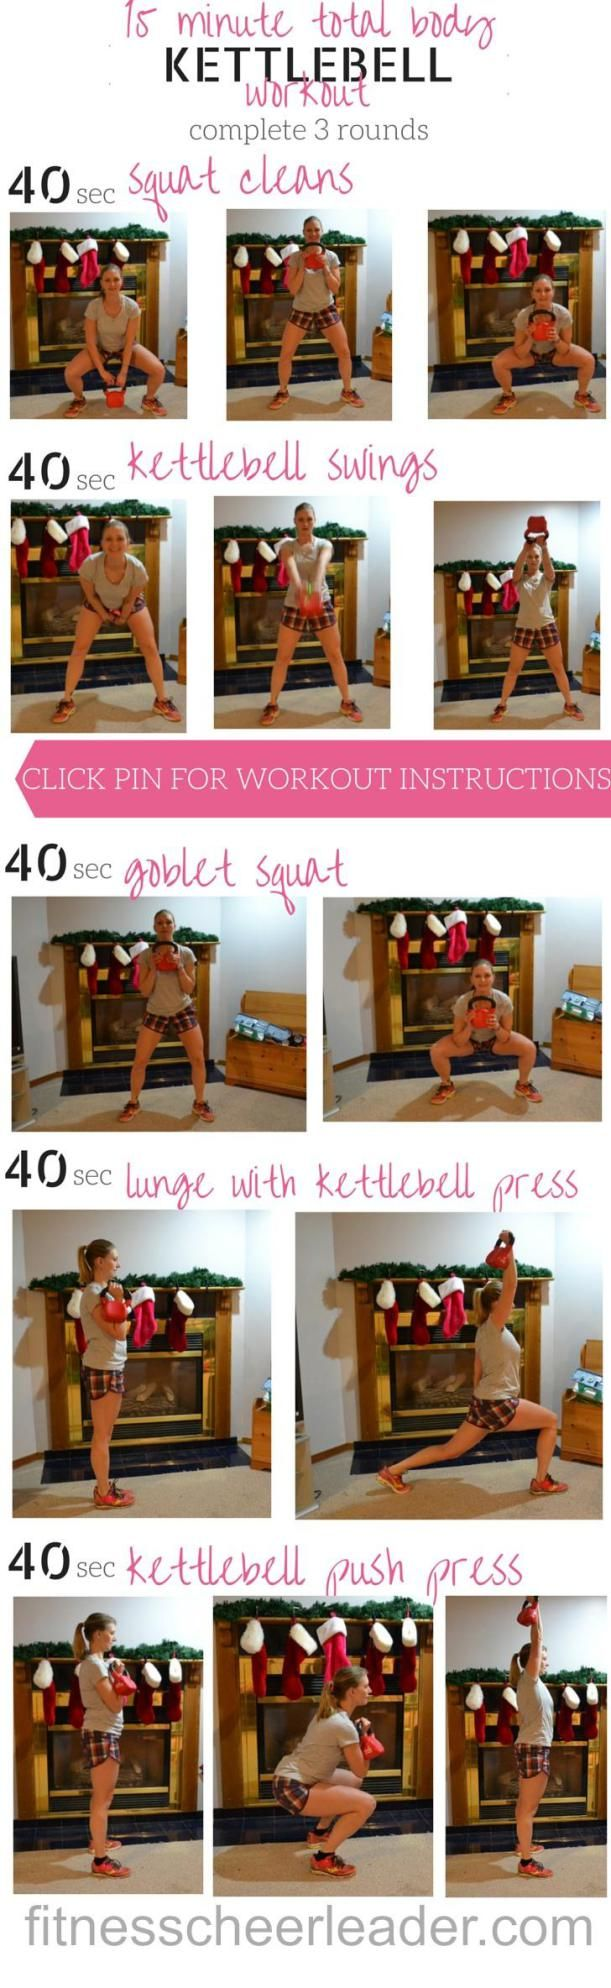 15 min full body kettlebell workout for runners.  Do this routine 3 times a week to become a faster runner.  CLICK PIN FOR WORKOUT INSTRUCTIONS AND INSTRUCTIONAL VIDEOS. via @fitcheerldr LINK: http://fitnesscheerleader.com/fitness/running/become-stronger-runner-kettlebells/